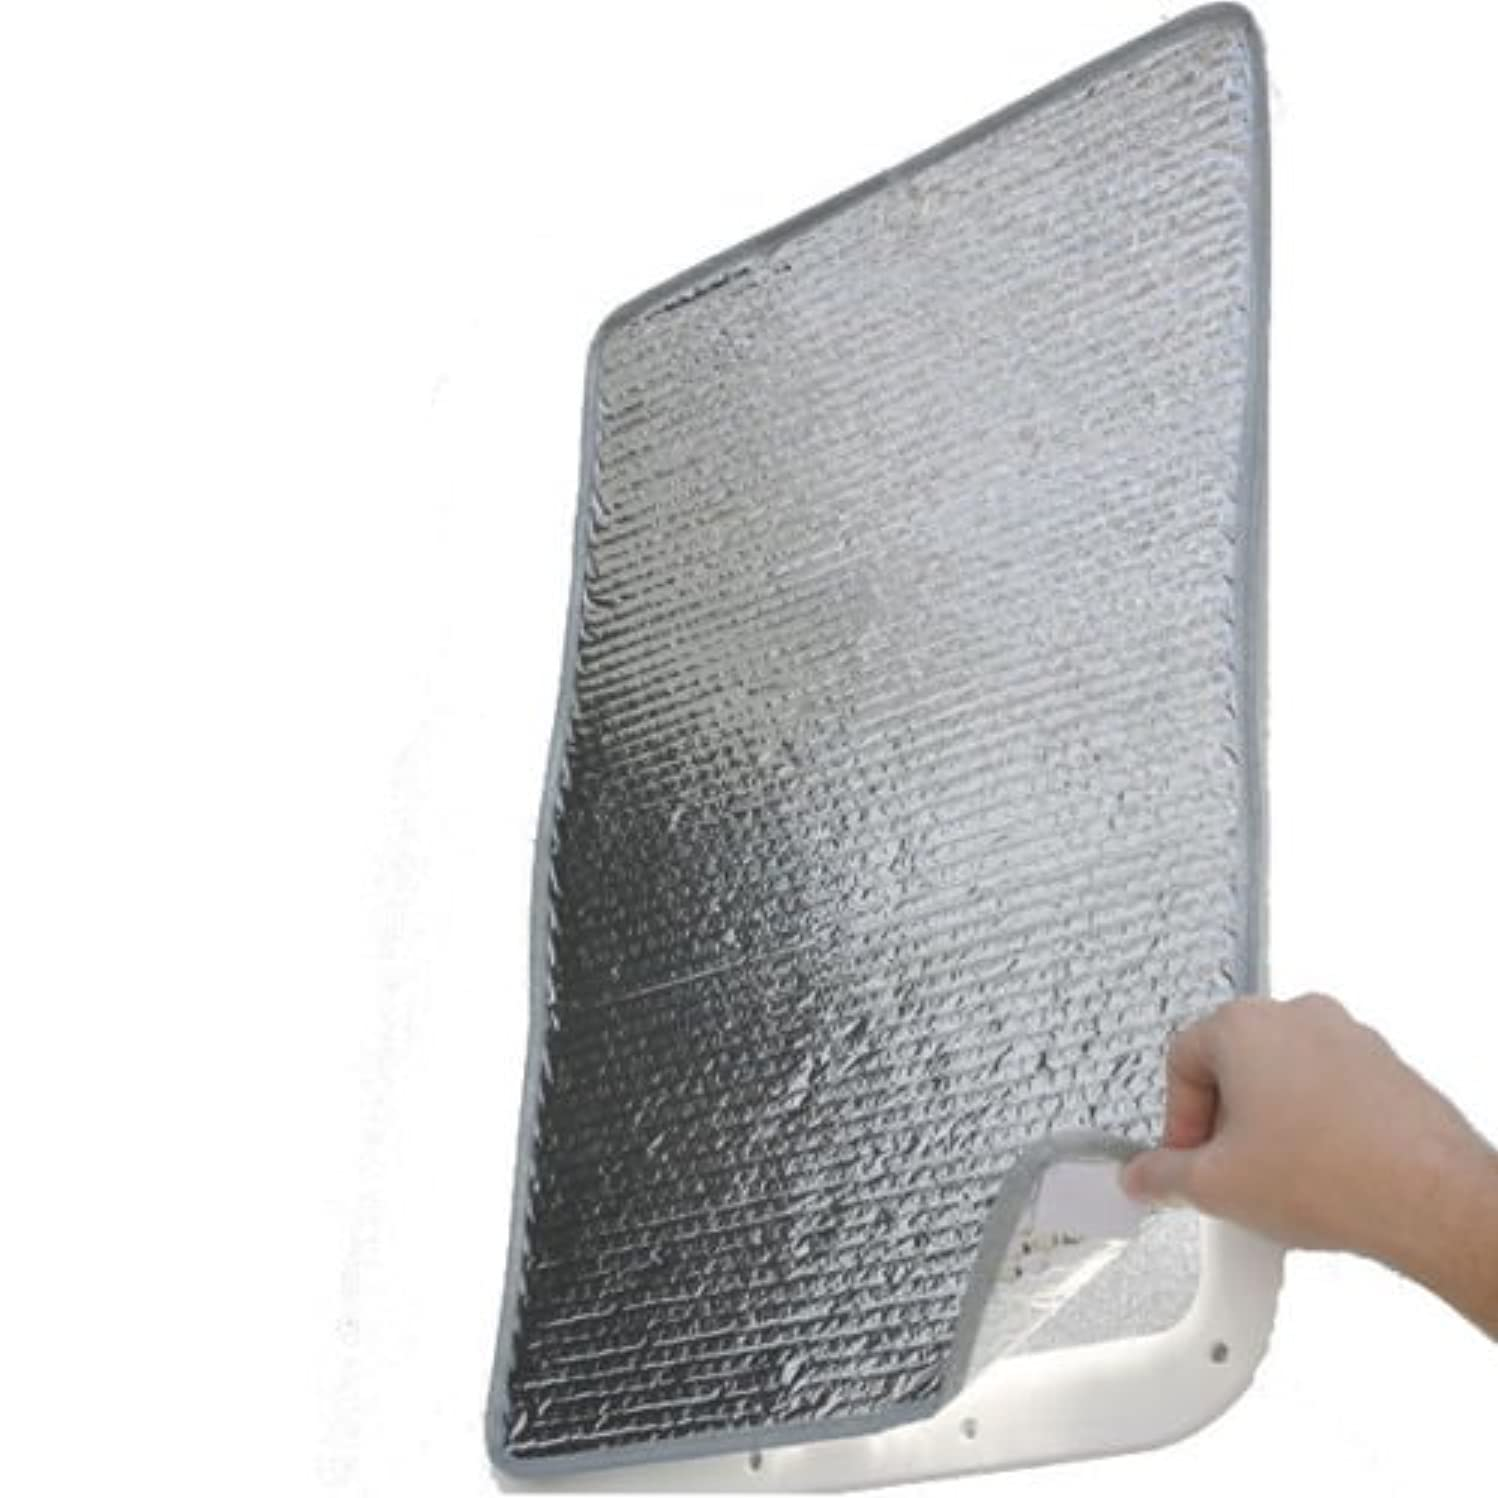 SunShield Reflective Door Window Cover Protect RV Trailer Camping Travel